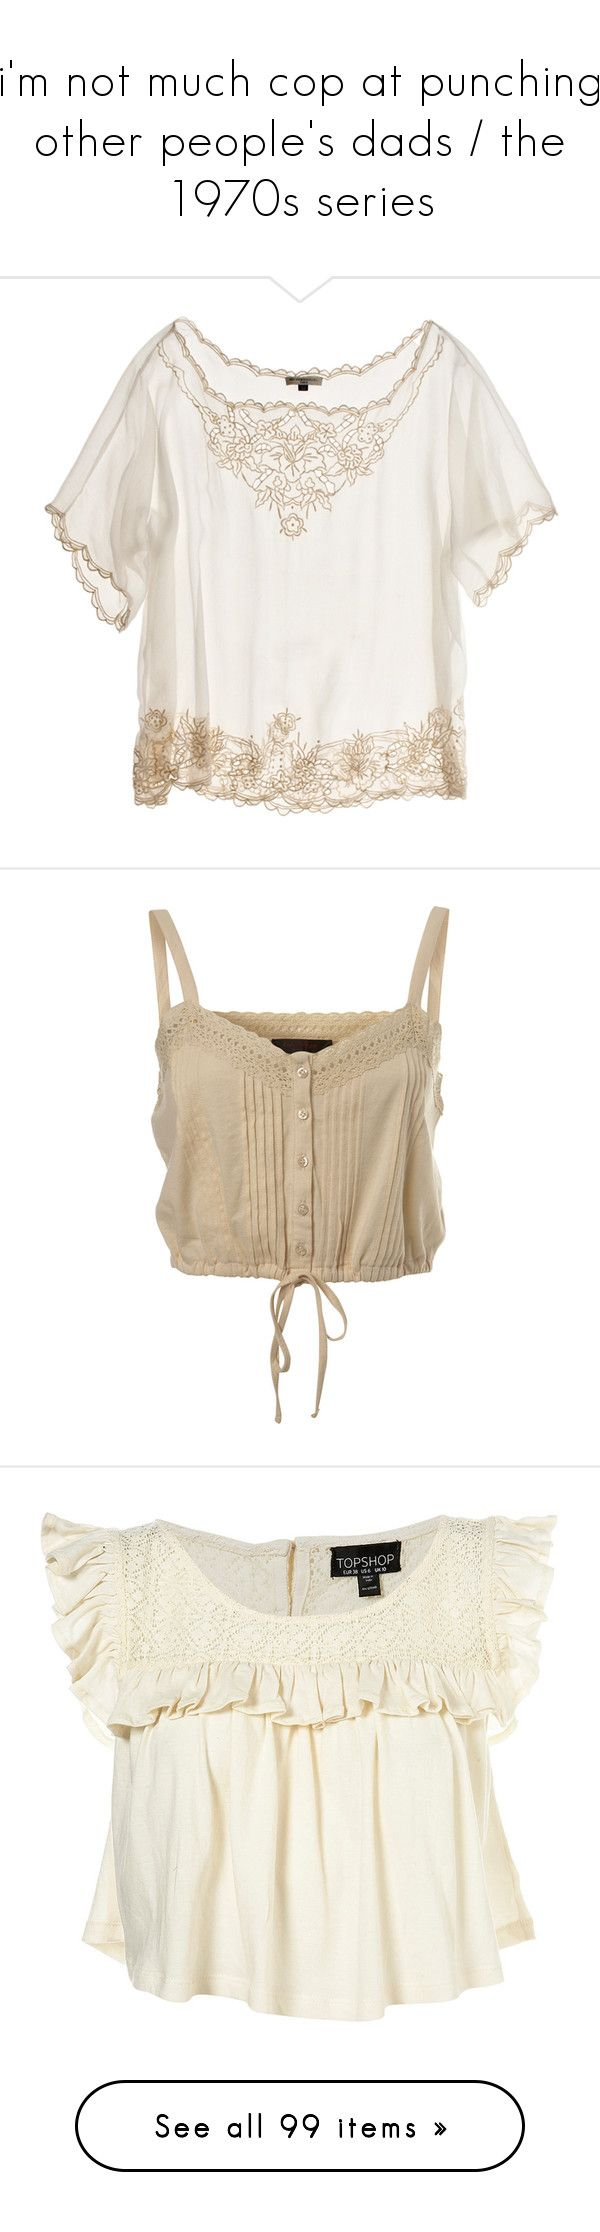 """""""i'm not much cop at punching other people's dads / the 1970s series"""" by viten ❤ liked on Polyvore featuring tops, blouses, shirts, t-shirts, women, white eyelet blouse, grommet top, shirt top, shirt blouse and white eyelet shirt"""